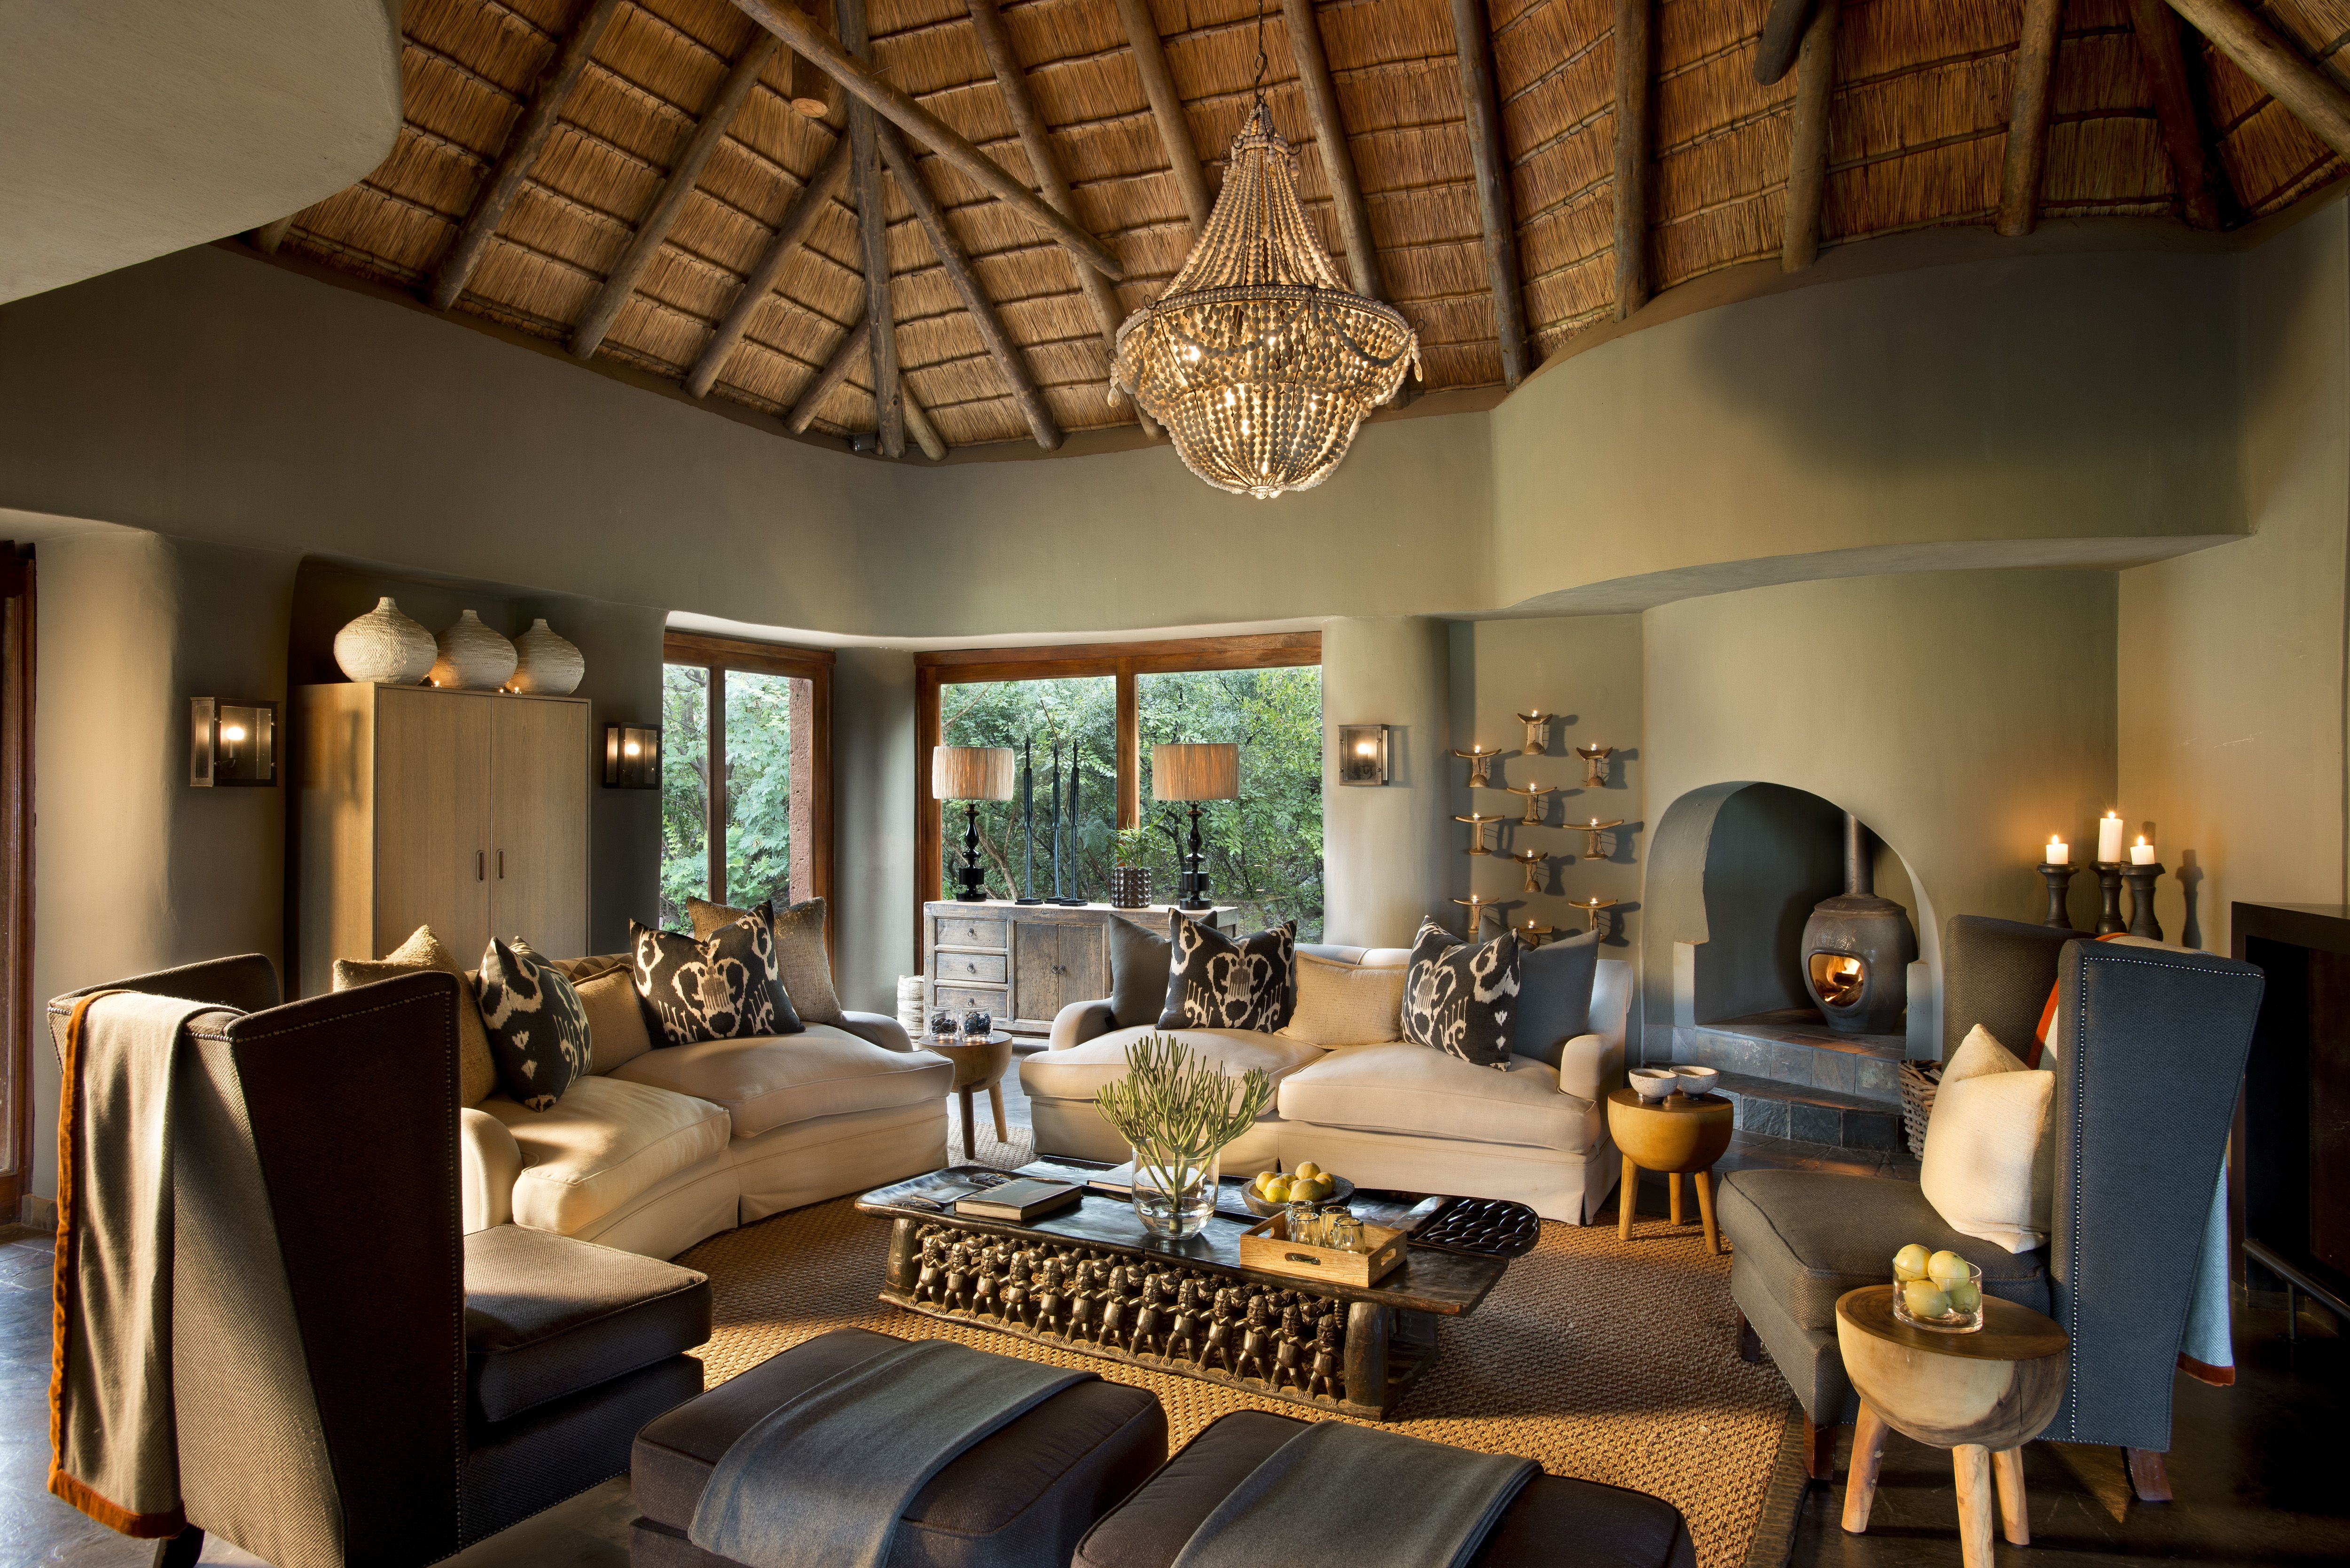 Pin By Ronel Jordaan On Safari Room In 2019 African Home